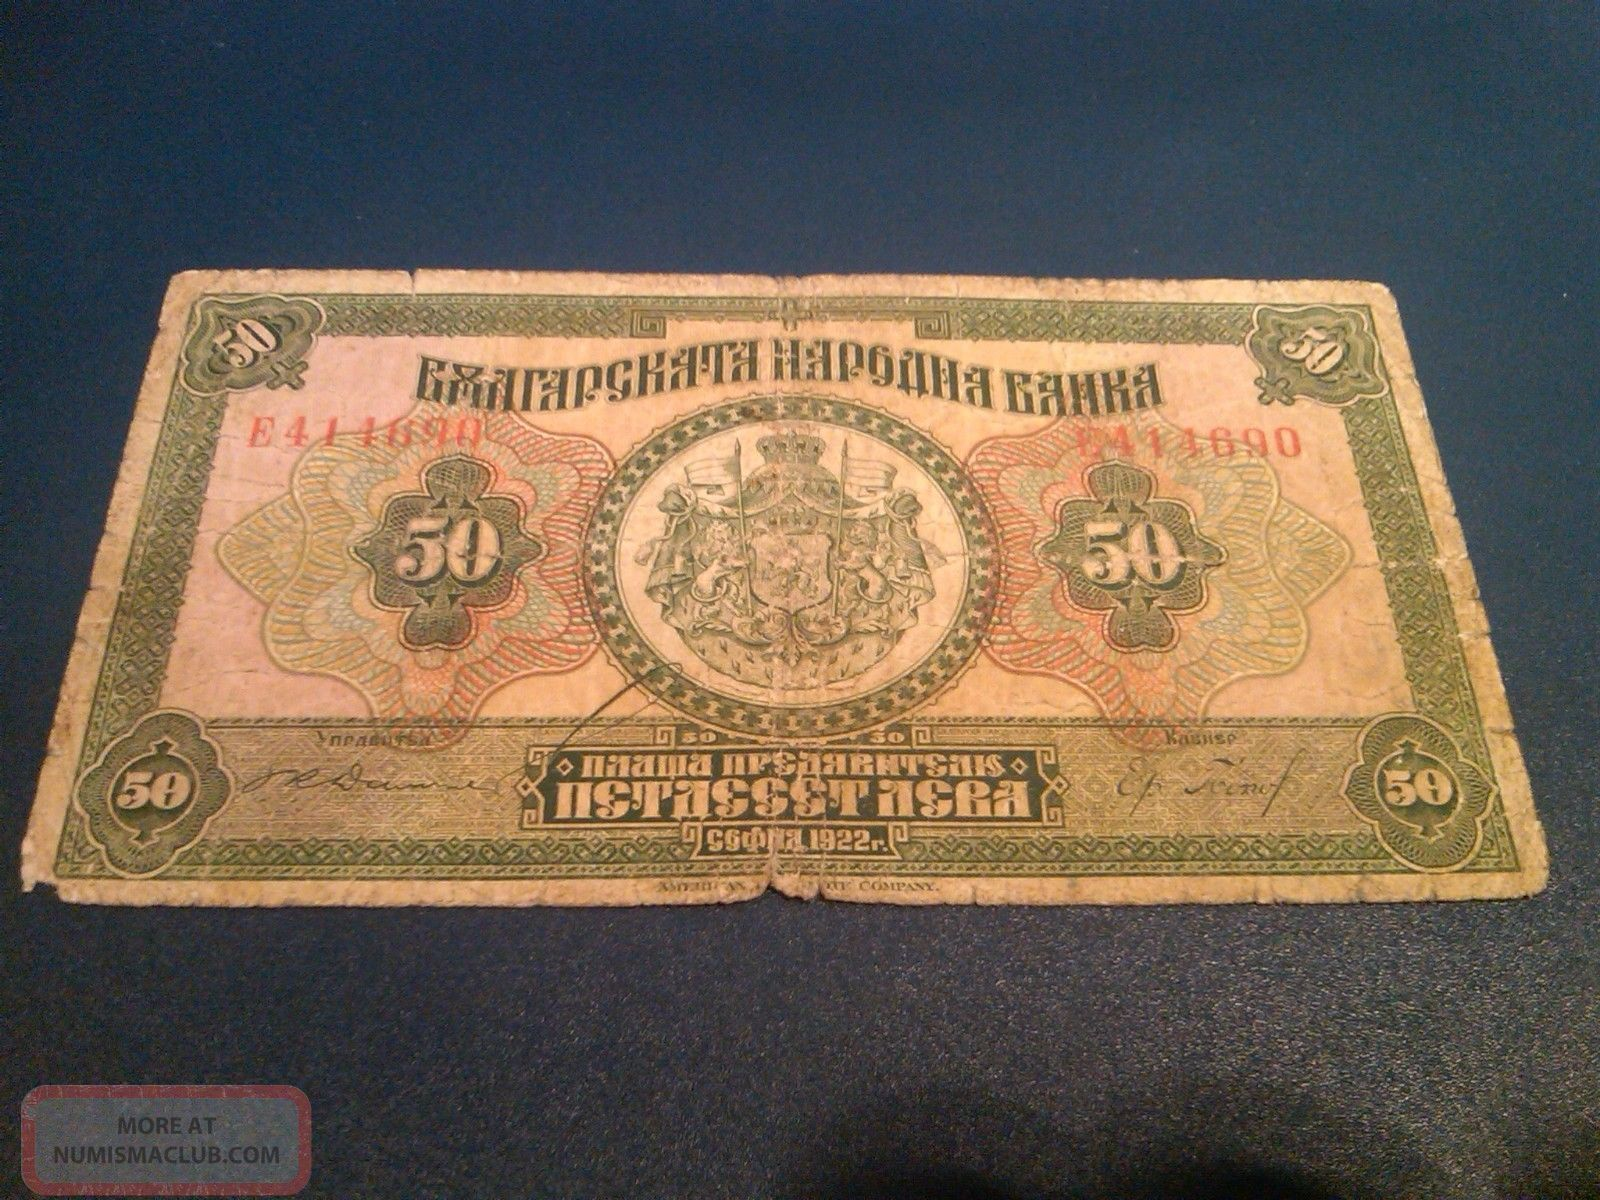 Bulgaria - - - - - - 50 Leva 1922 - - - - - - Rrr Europe photo